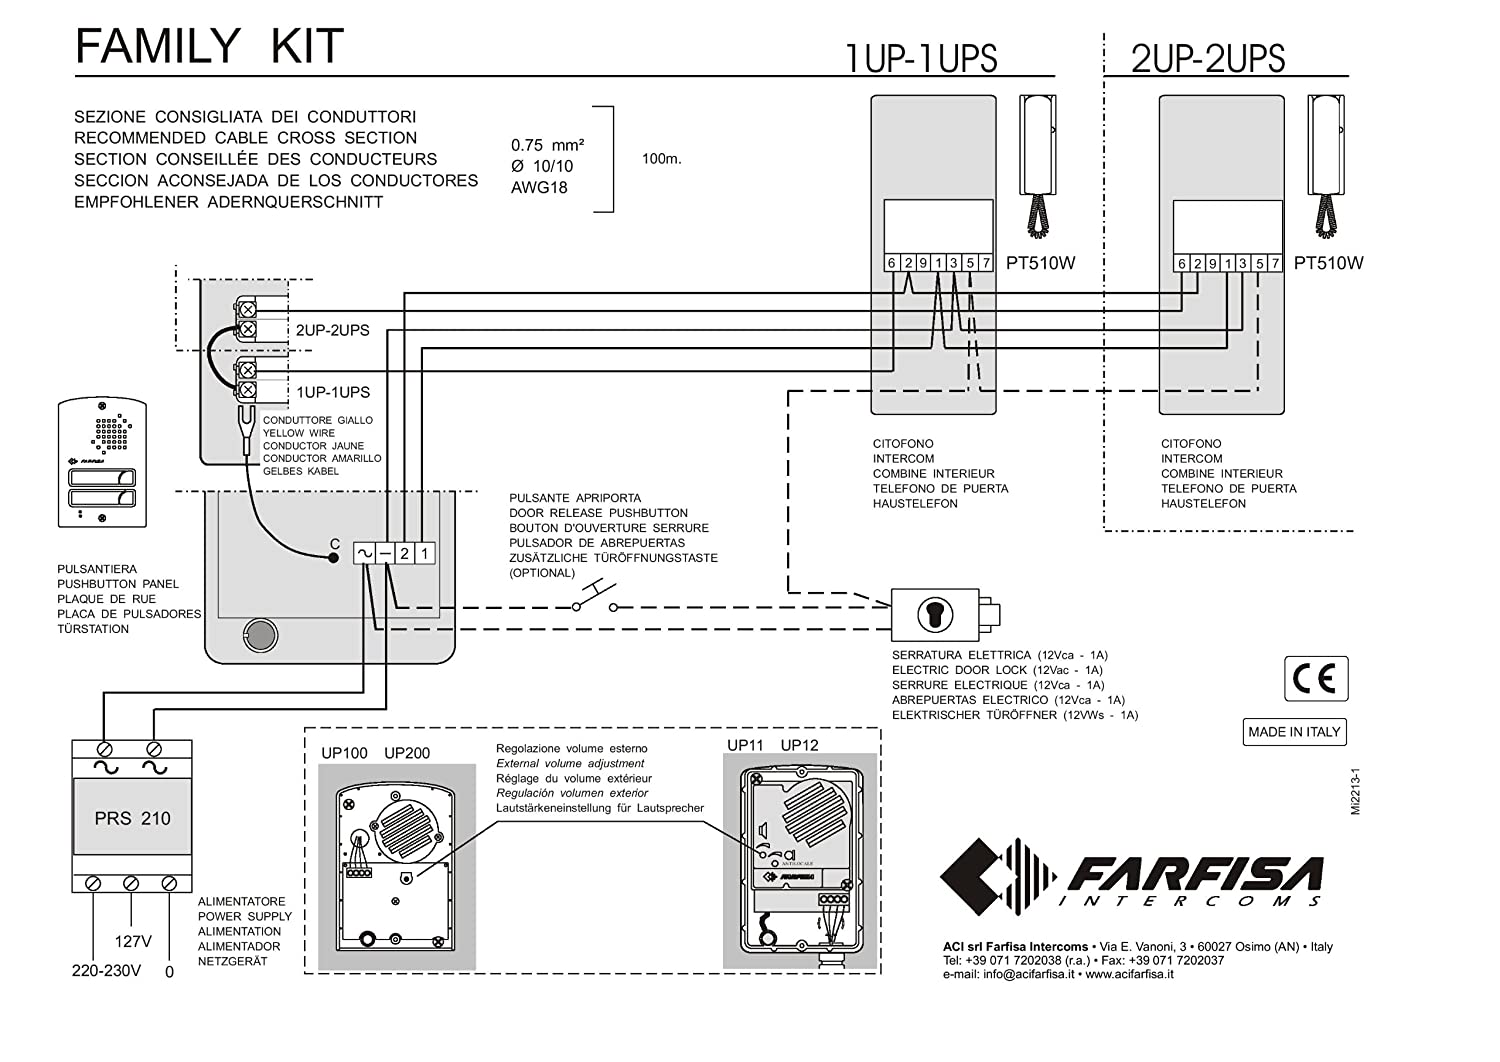 81VvKBixesL._SL1500_ amazon com o9n farfisa 1ups door entry audio intercom 2 way farfisa door entry wiring diagrams at mifinder.co